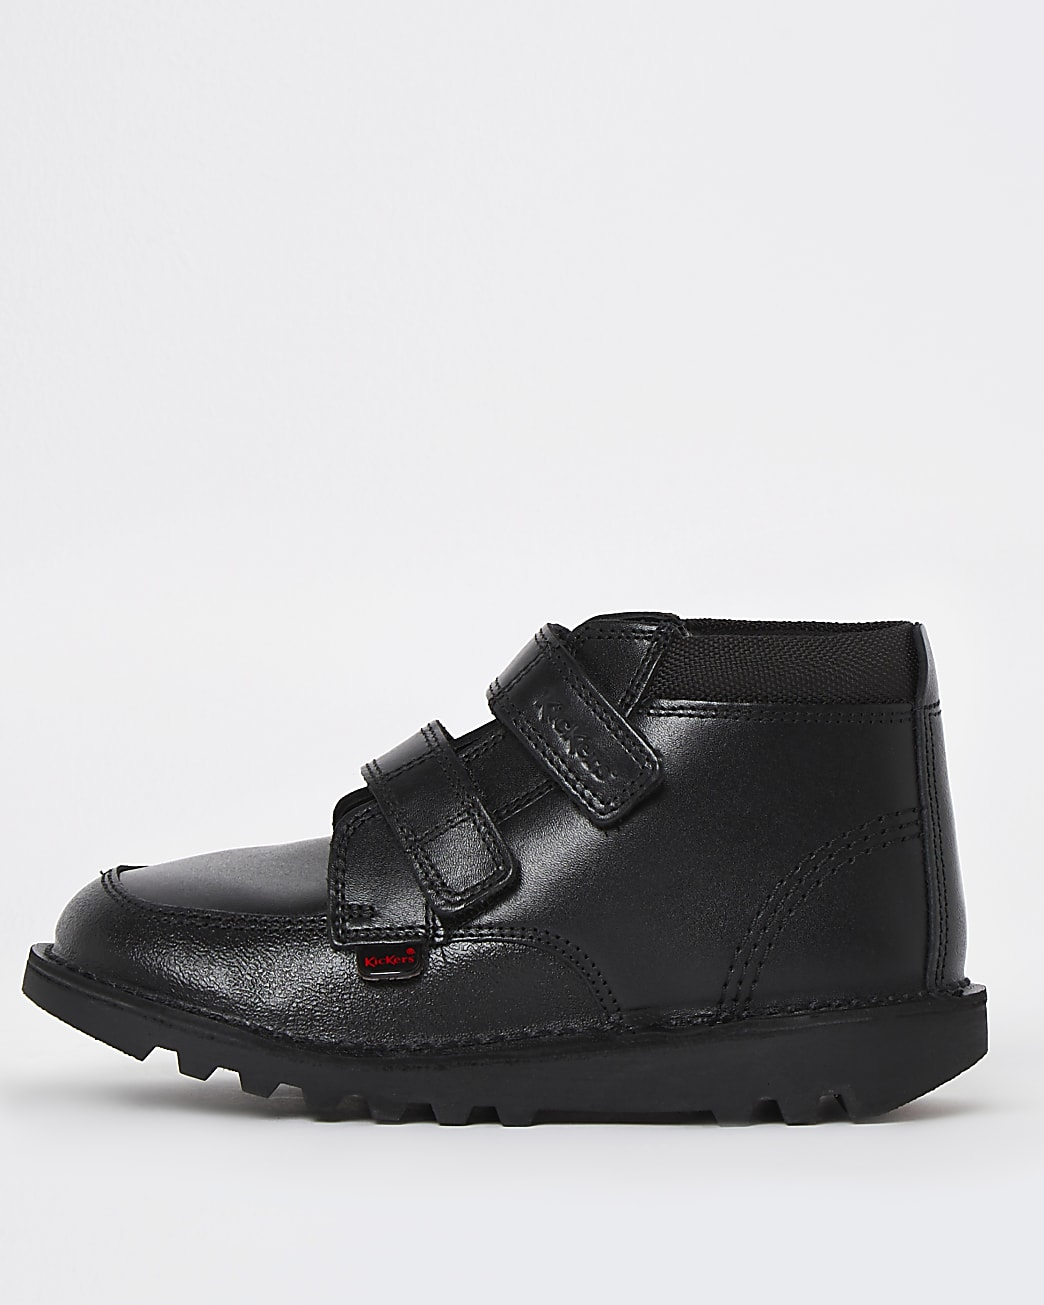 Boys black Kickers leather shoes